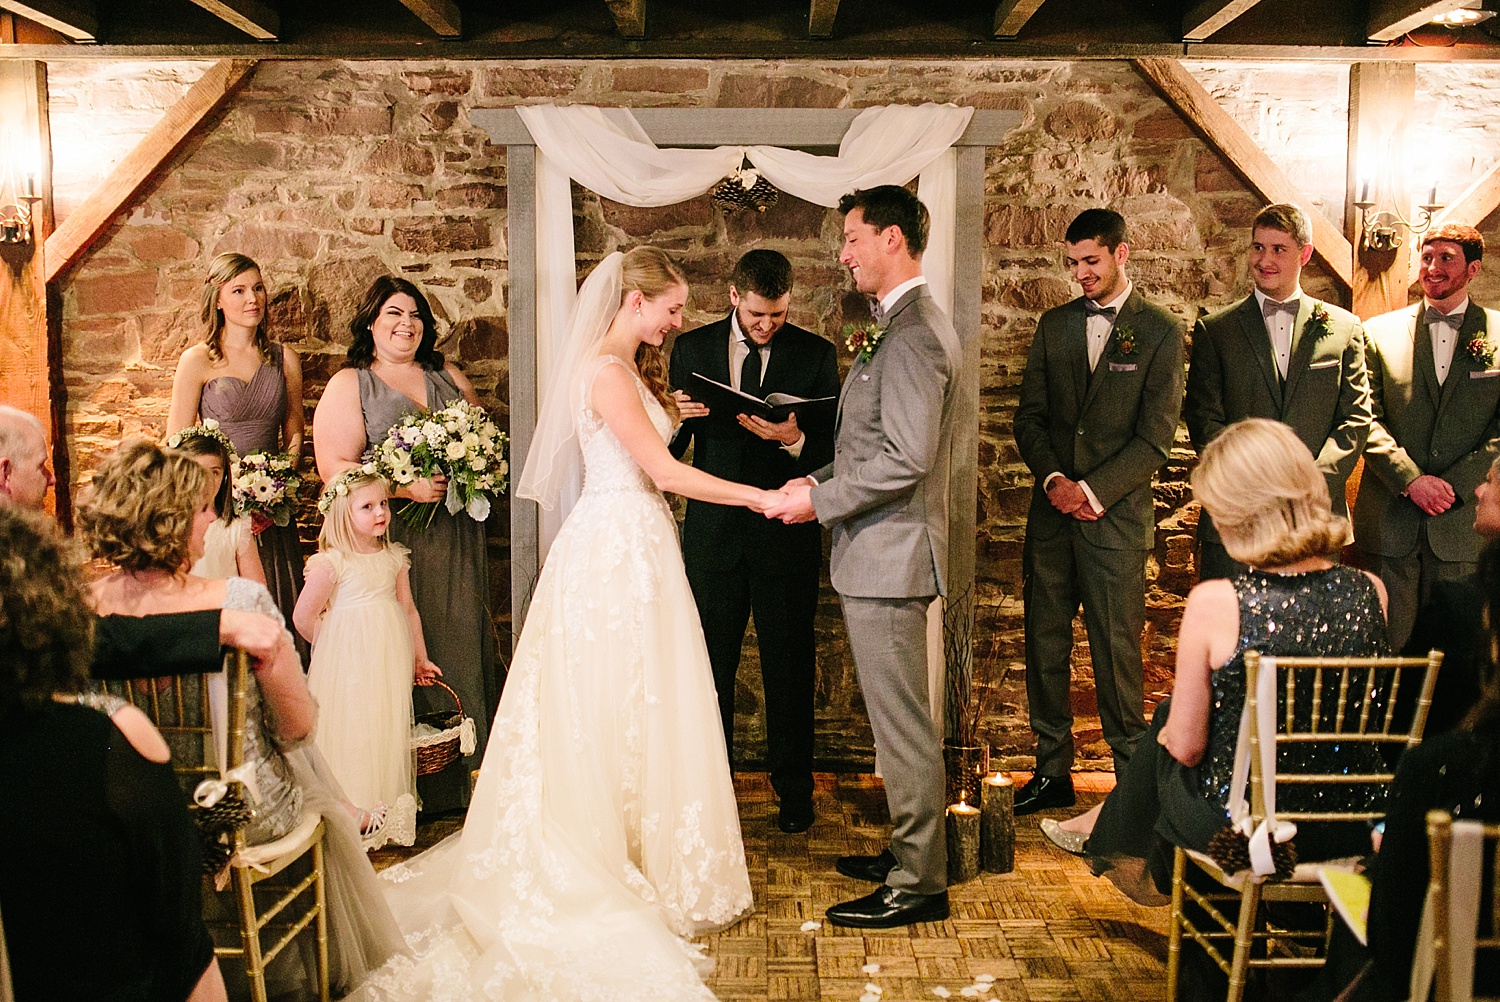 jessdavid_barnonbridge_phoenixville_winter_wedding_image_072.jpg